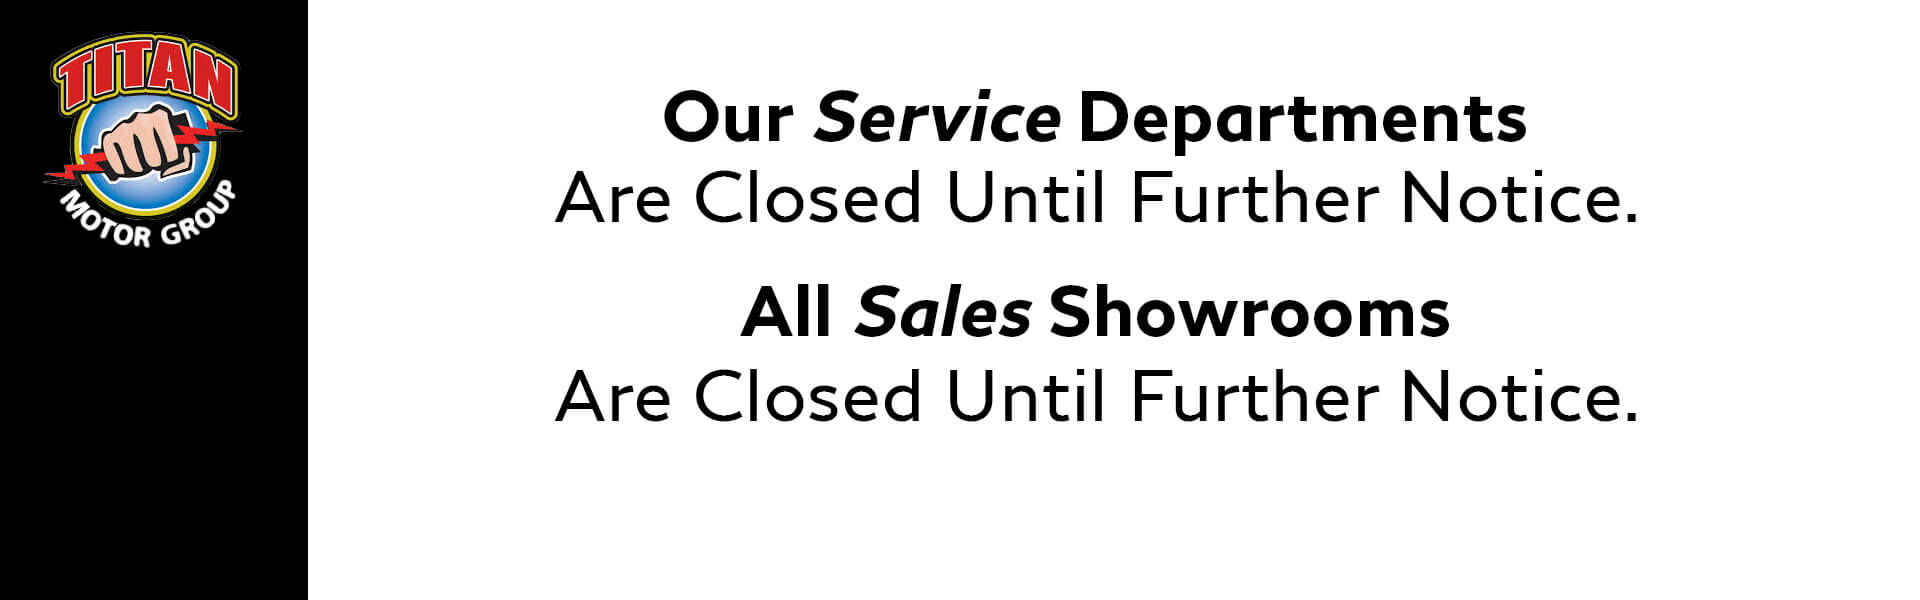 our Service Departments Are Closed Until Further Notice | All Sales Showrooms Are Closed Until Further Notice